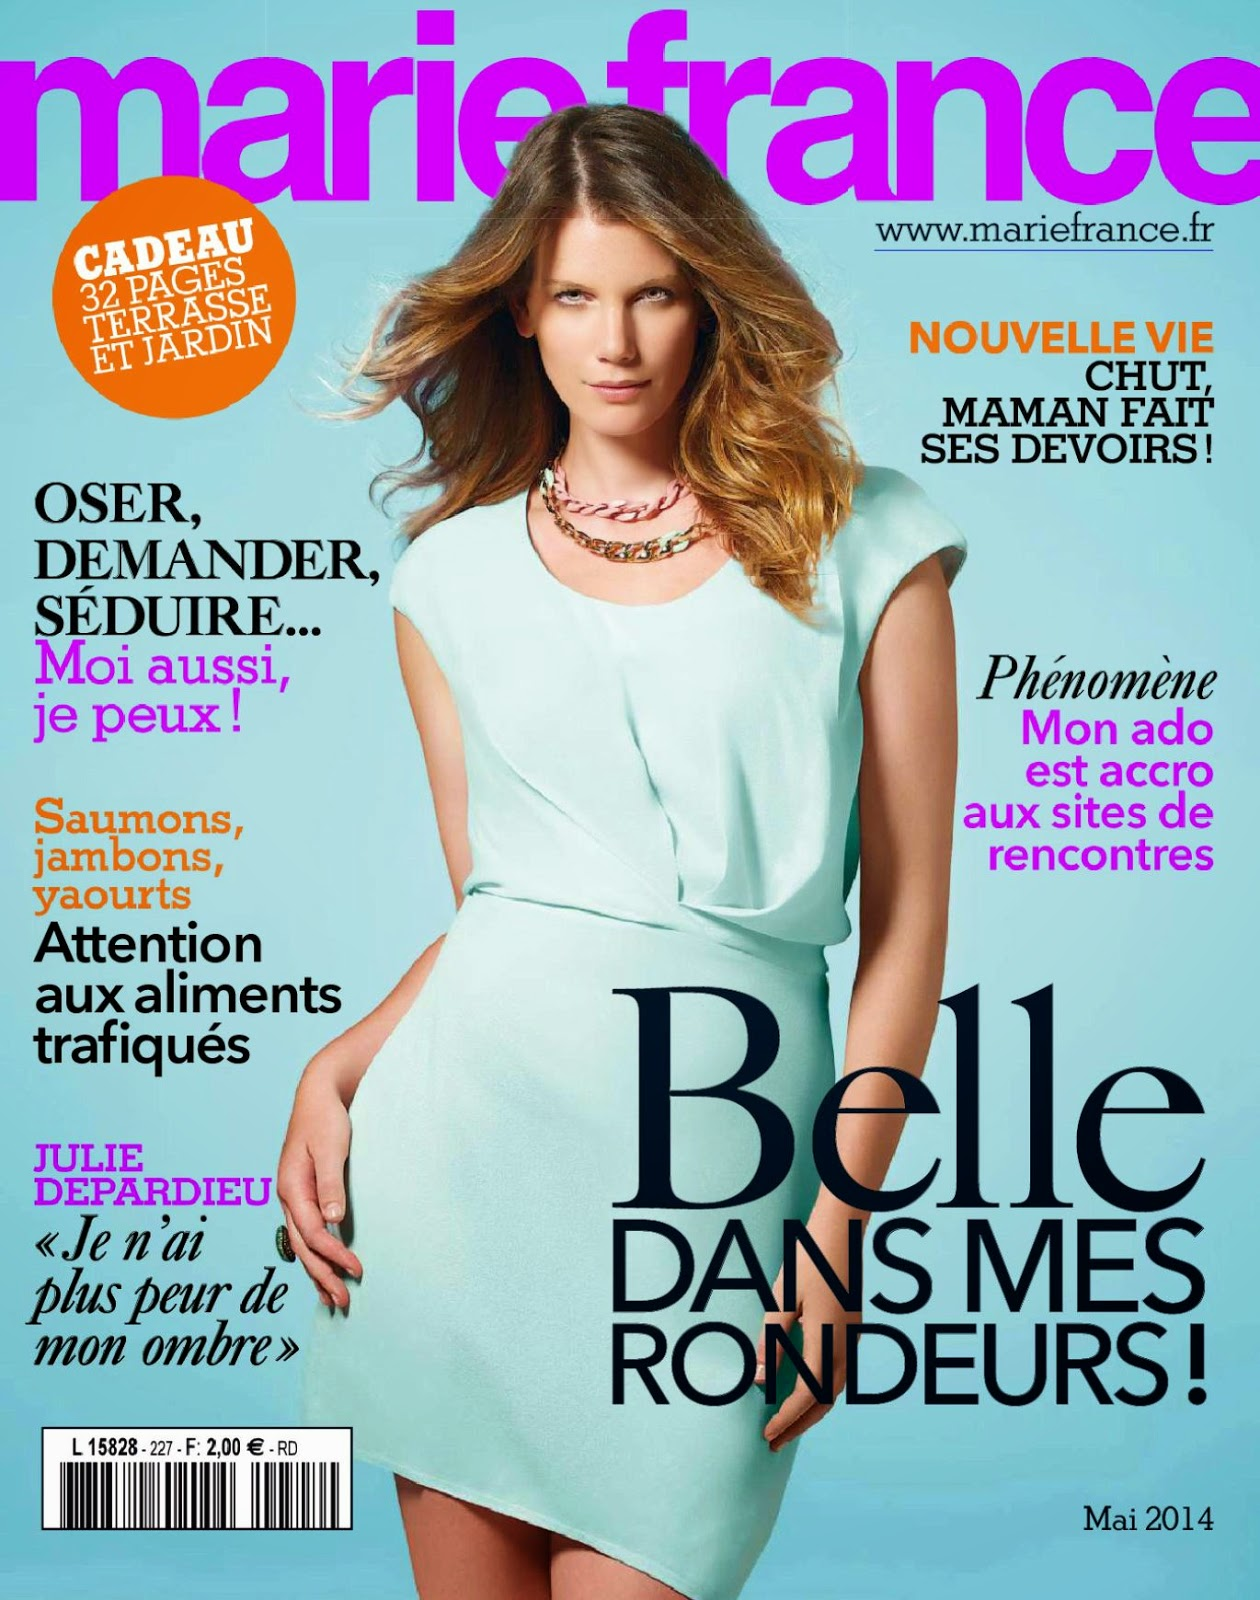 magazines the charmer pages claryssa for marie france magazine france may 2014. Black Bedroom Furniture Sets. Home Design Ideas